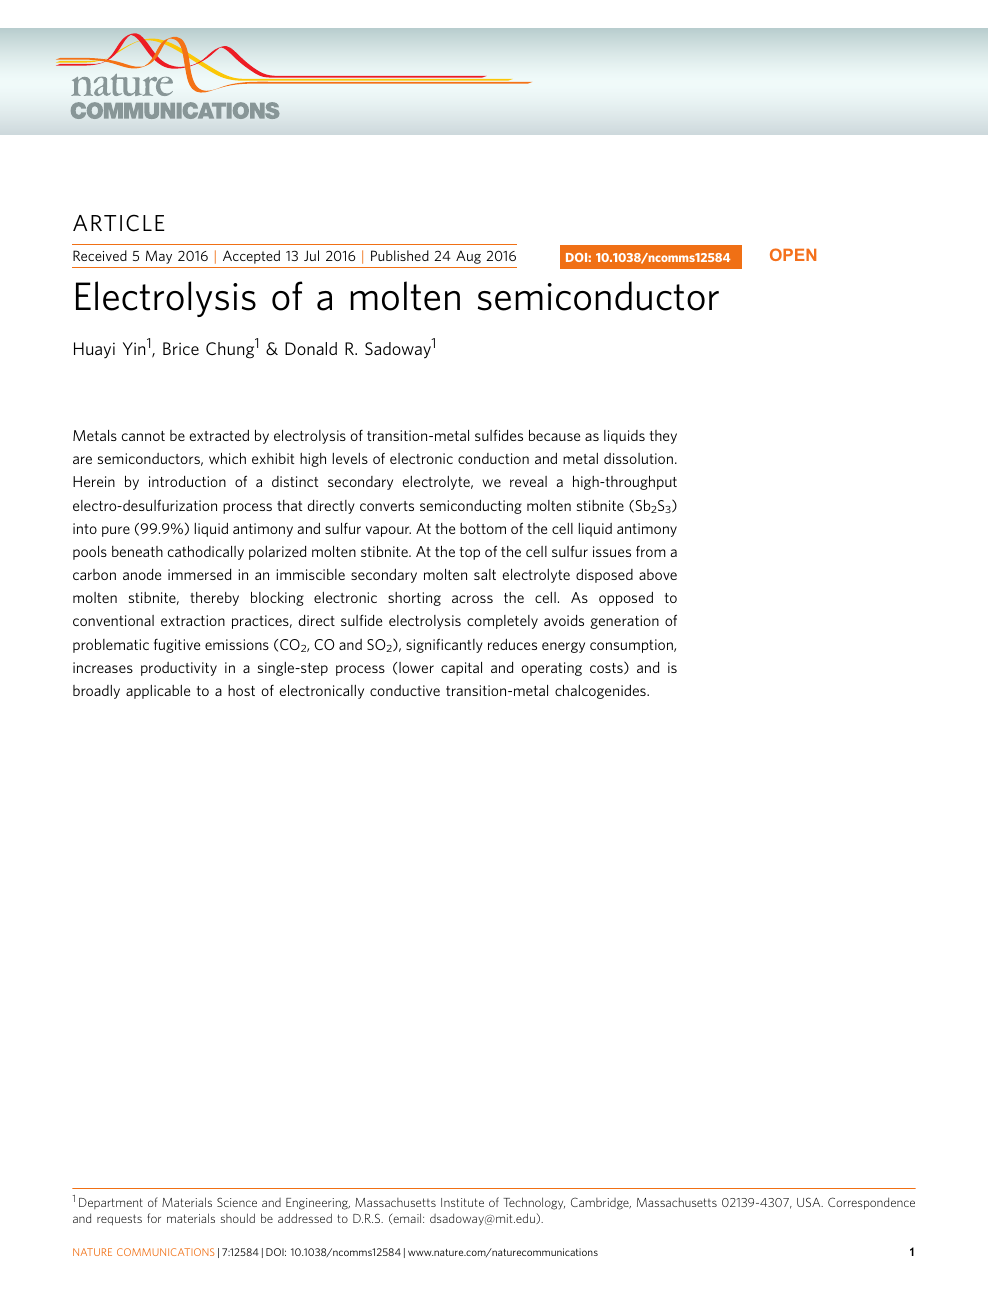 Electrolysis of a molten semiconductor – topic of research paper in